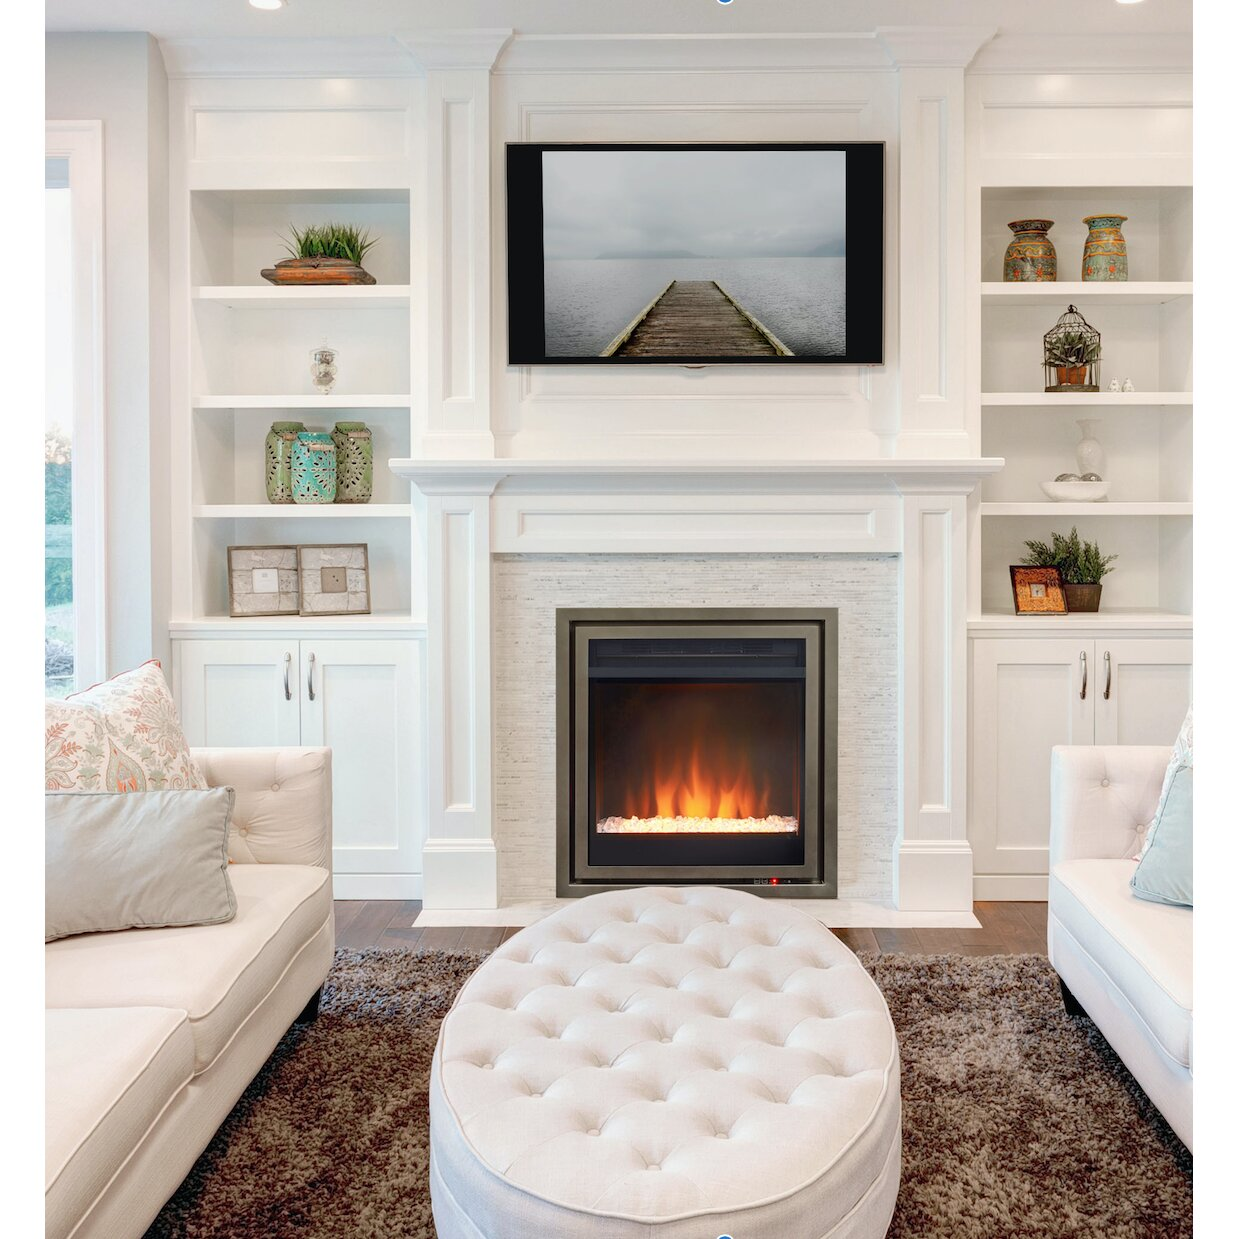 Pacific Heat Wall Mount Electric Fireplace Insert